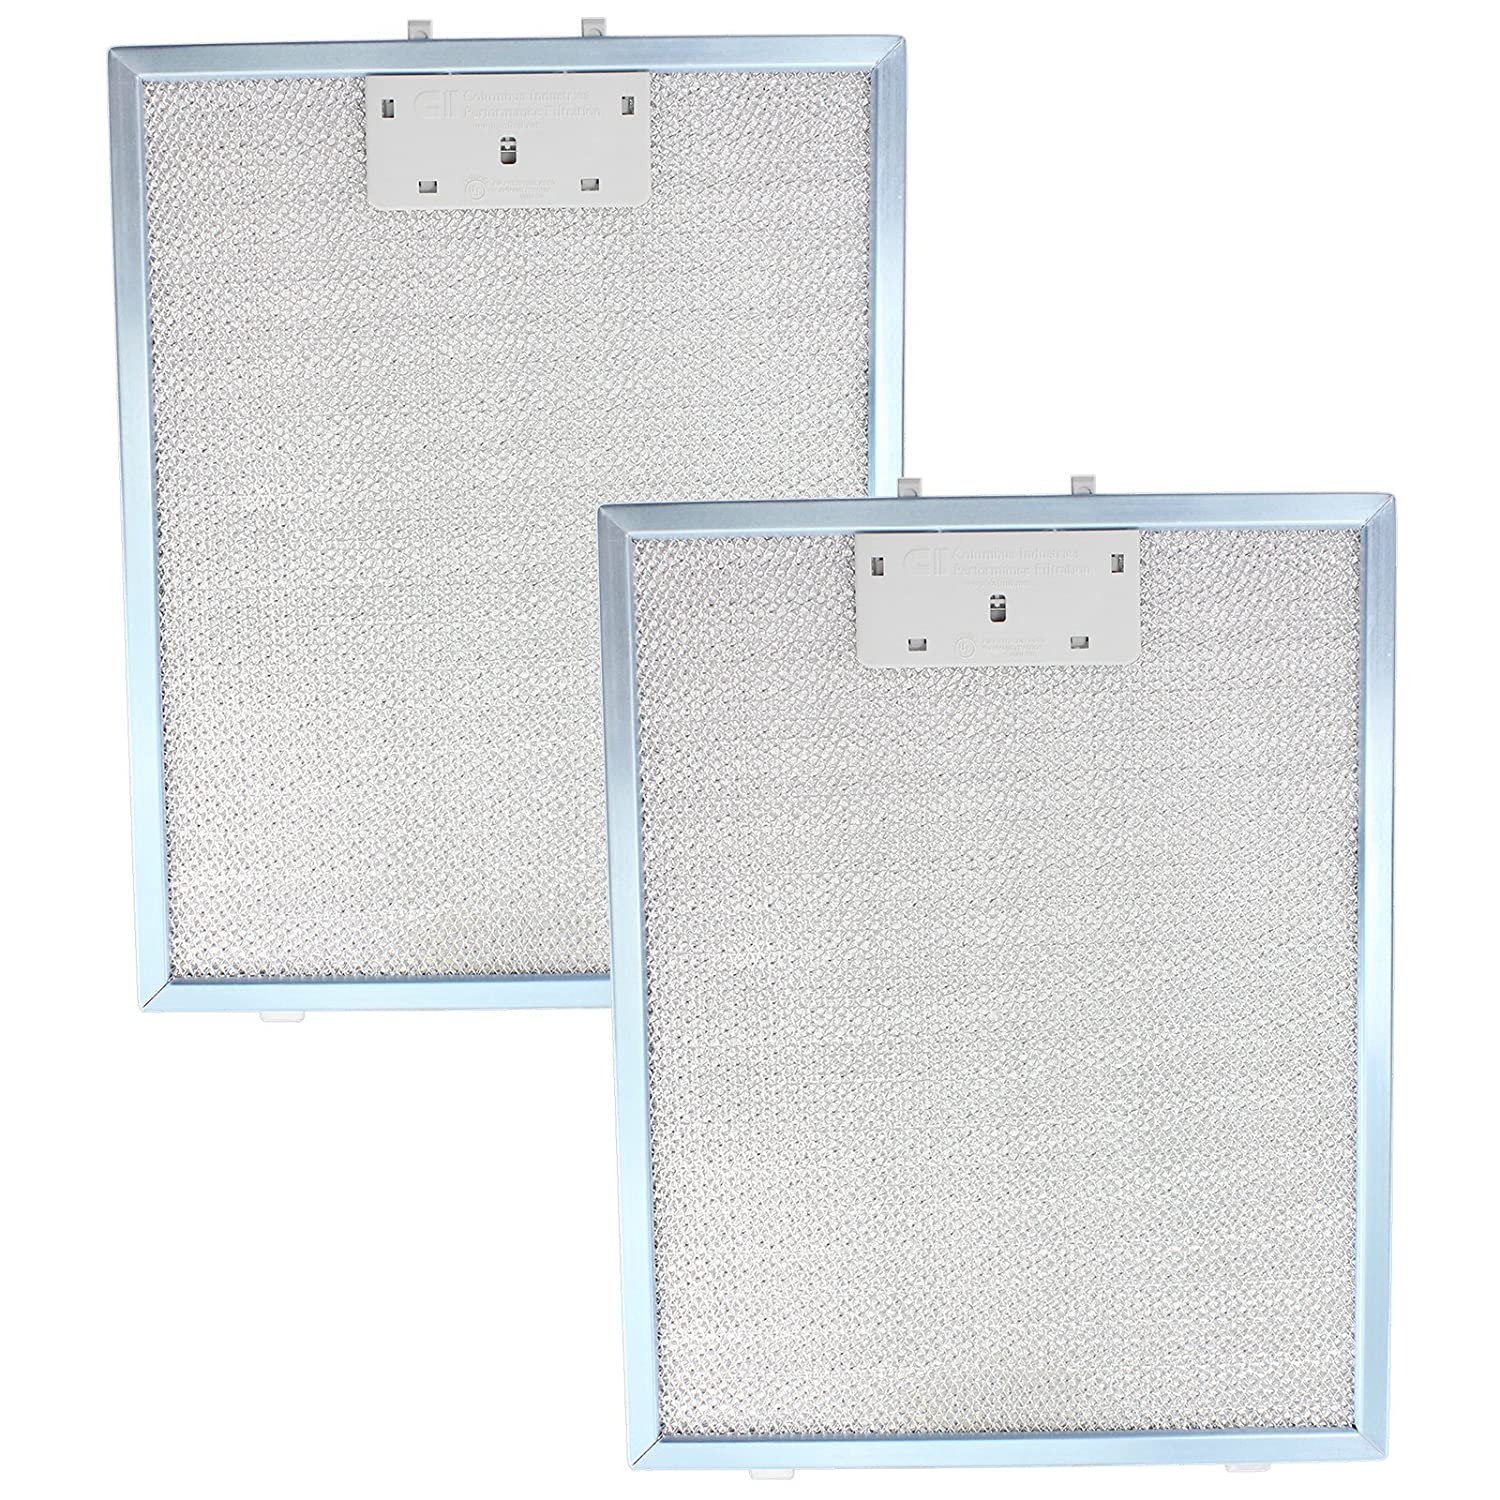 Diplomat ABA2640 Metal Mesh Cooker Hood Filters for Extractor Vent (Pack of 2, Blue, 300 x 240 mm)